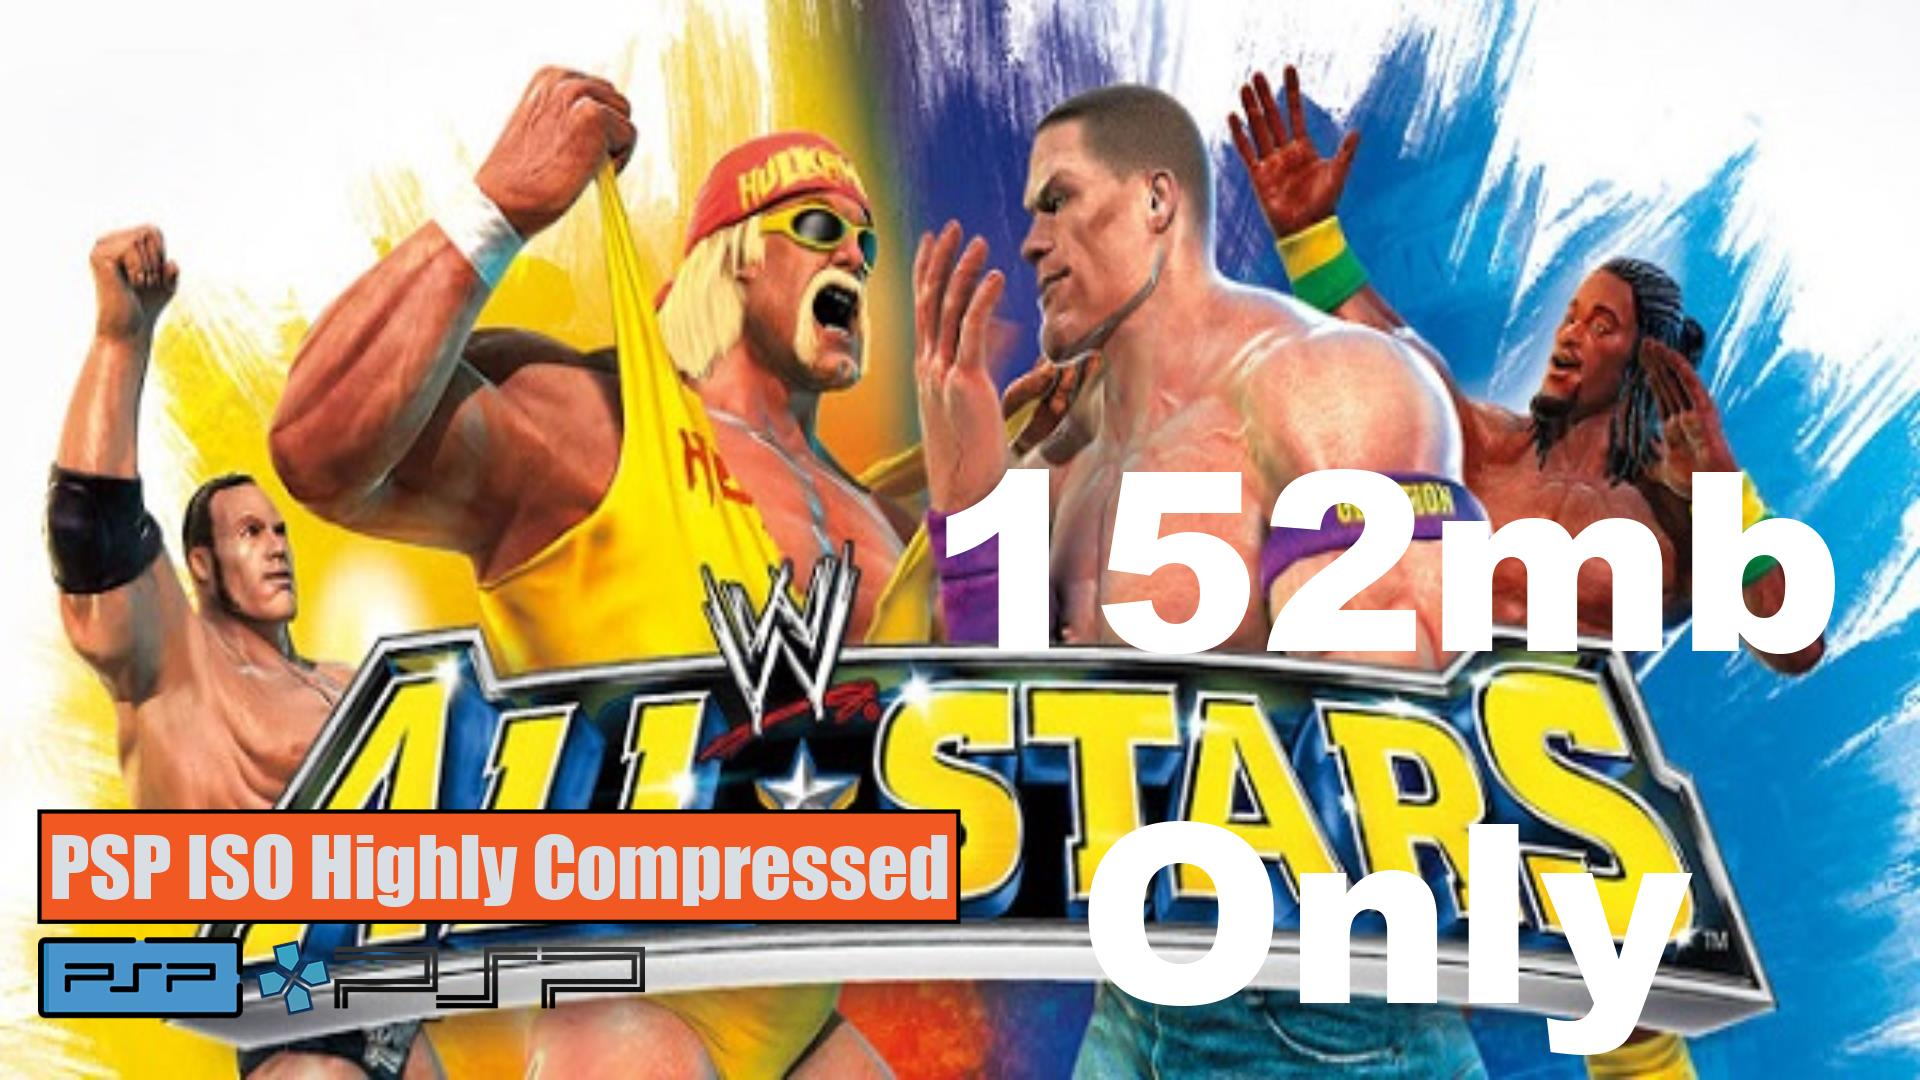 WWE All Stars PSP ISO Highly Compressed